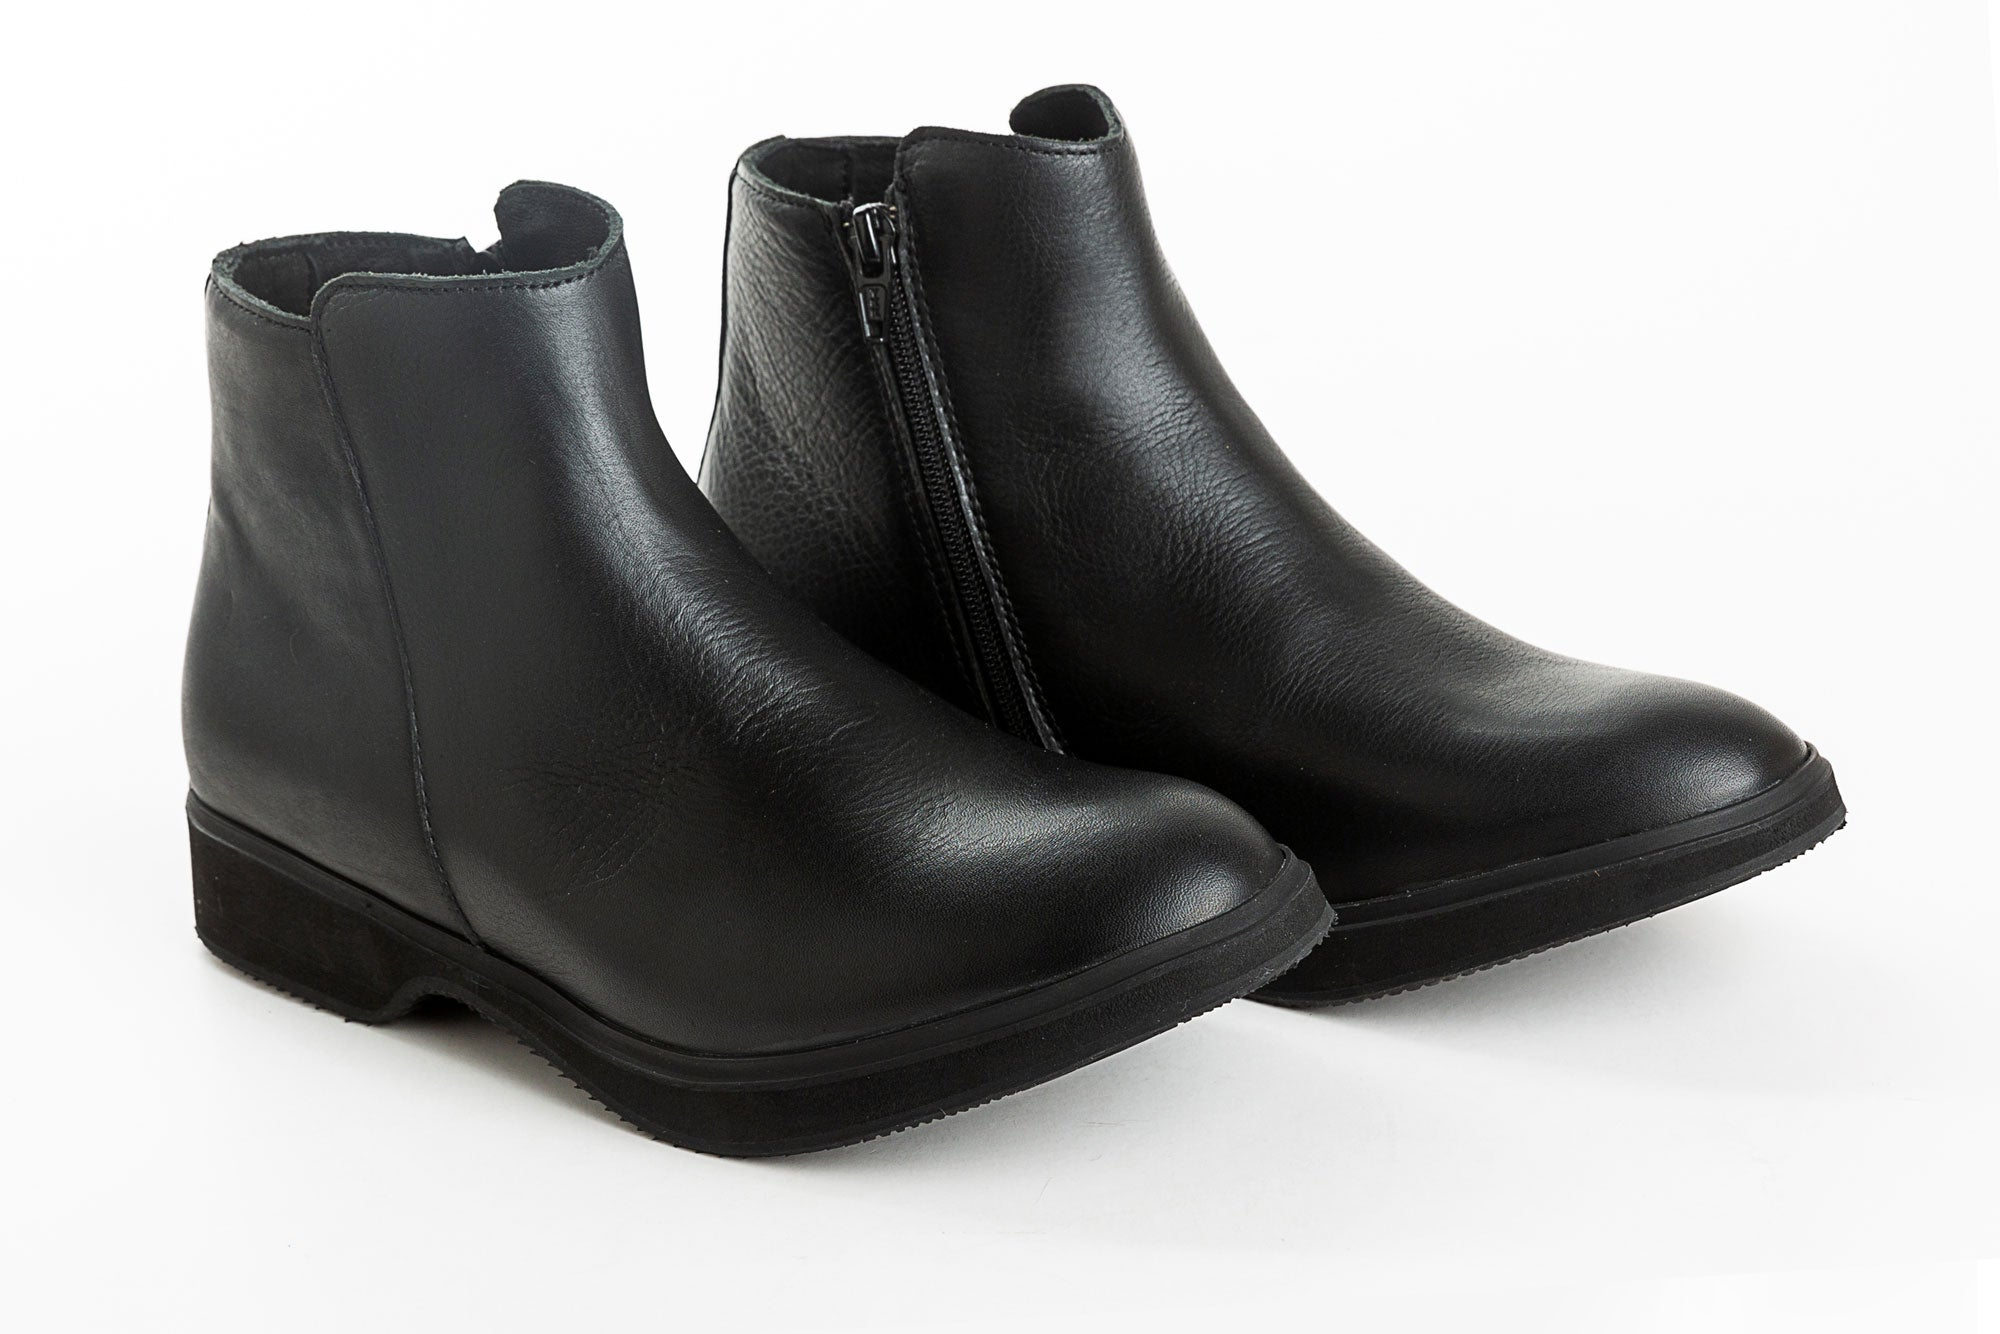 309bcadb675 ... Most Comfortable Womens Booties For Work - MARATOWN - super cushioned  sole - most comfortable shoes ...